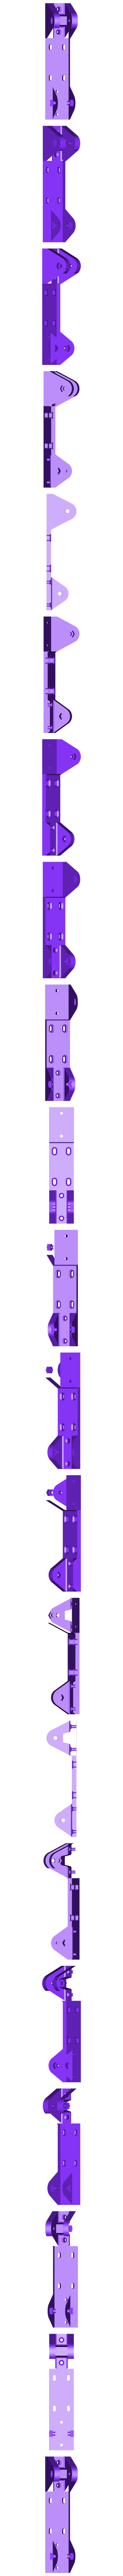 hinge_12mm_base_fixing.stl Download free STL file Special folding hinges for case-rap (custom version) • 3D printable model, dasaki